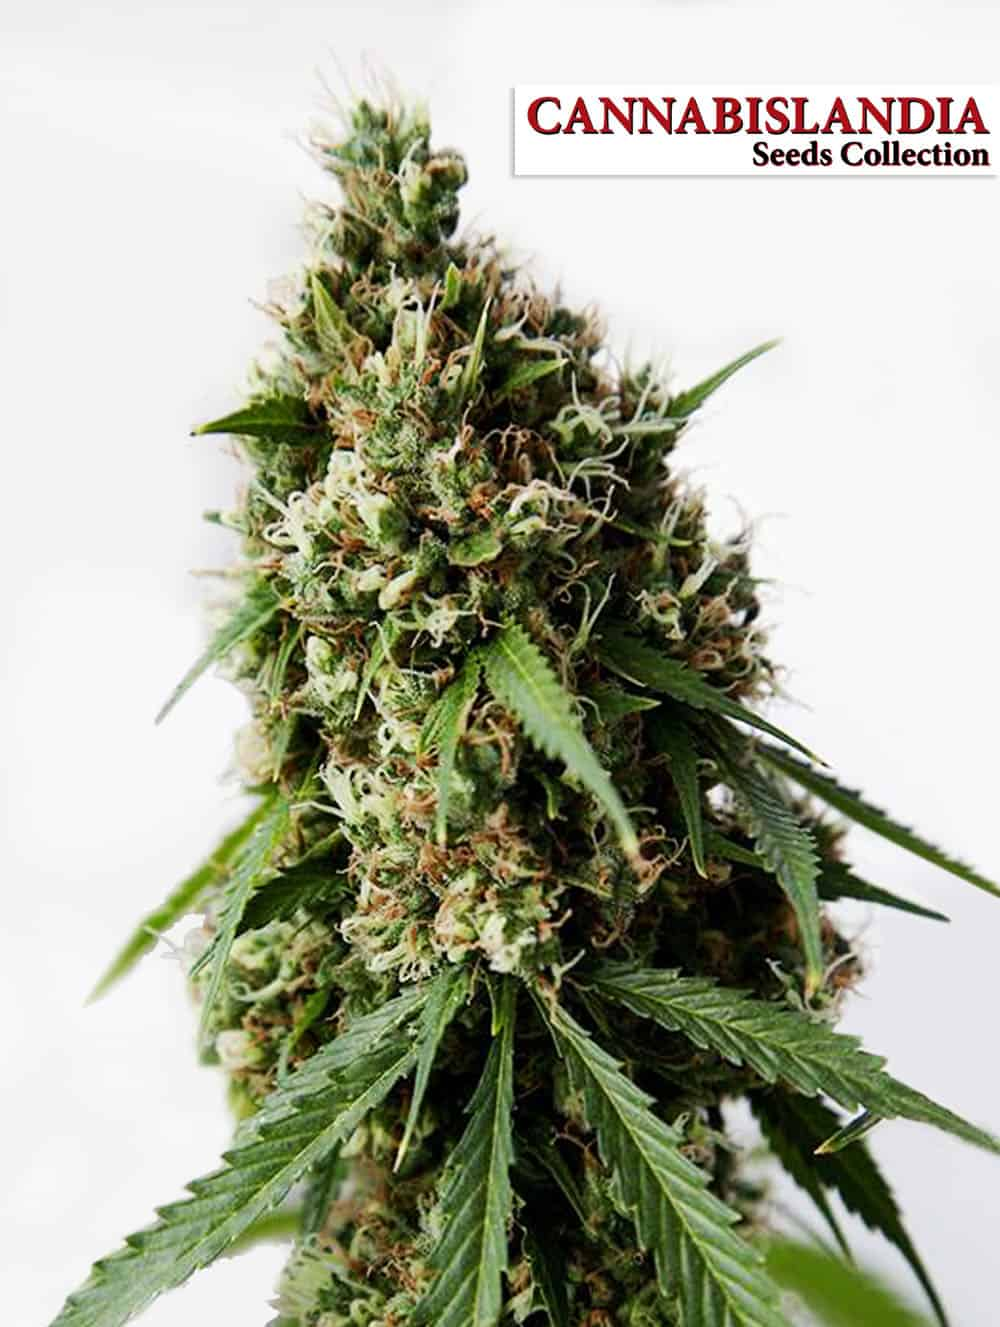 Auto Med CBD Cannabislandia Seeds Collection